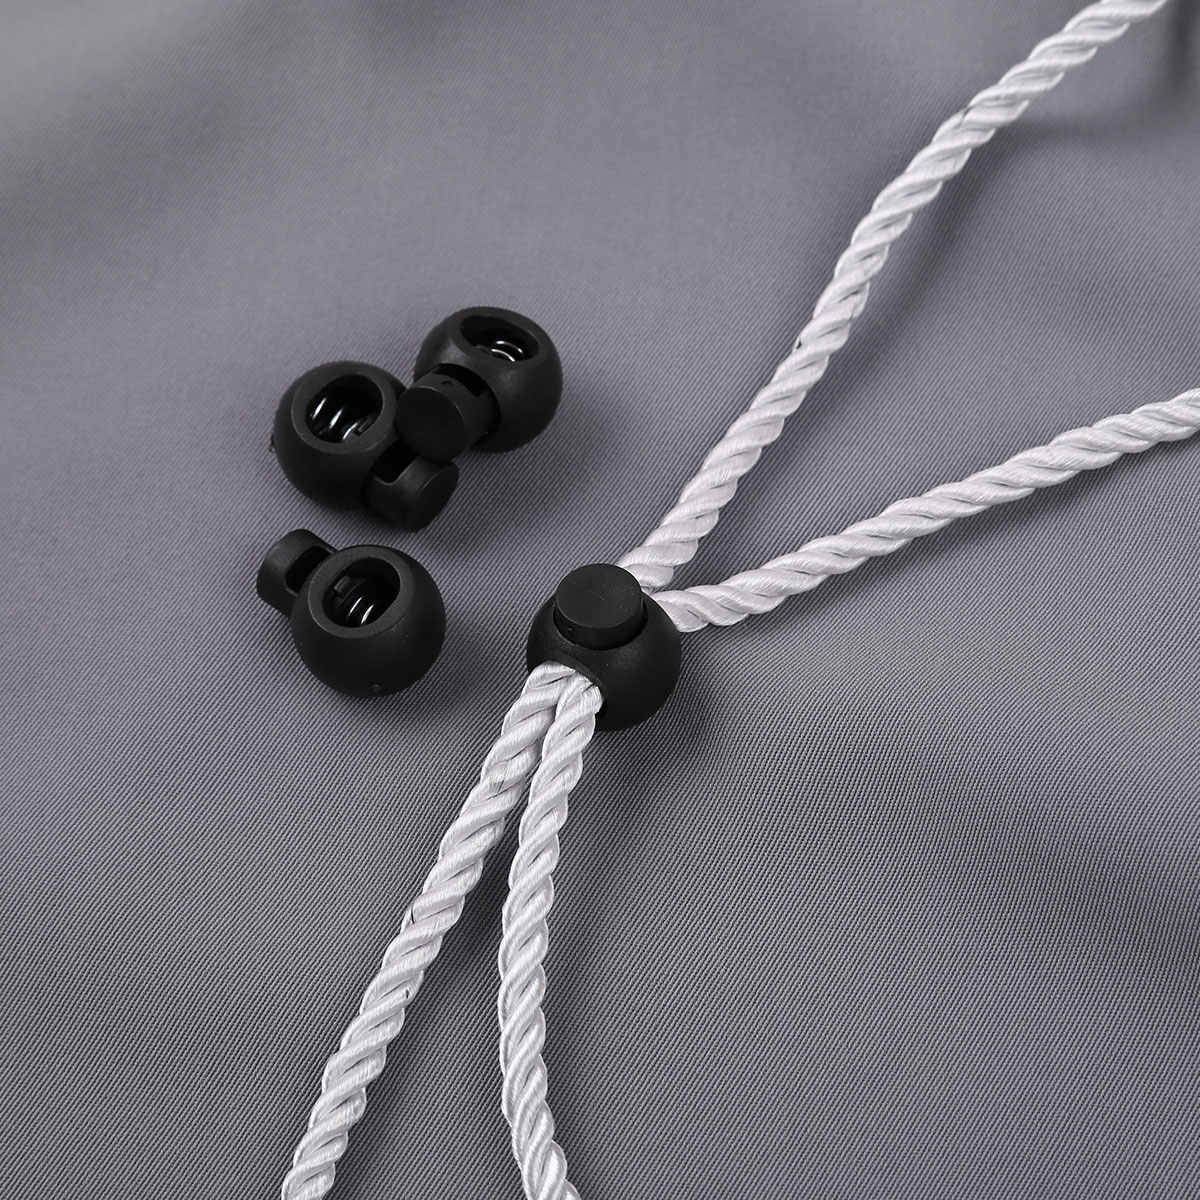 Shensee Plastic Toggle Single Hole Spring Loaded Elastic Drawstring Rope Cord Locks Clip Luggage Lanyard Stopper Sliding Fastener Buttons 25pcs